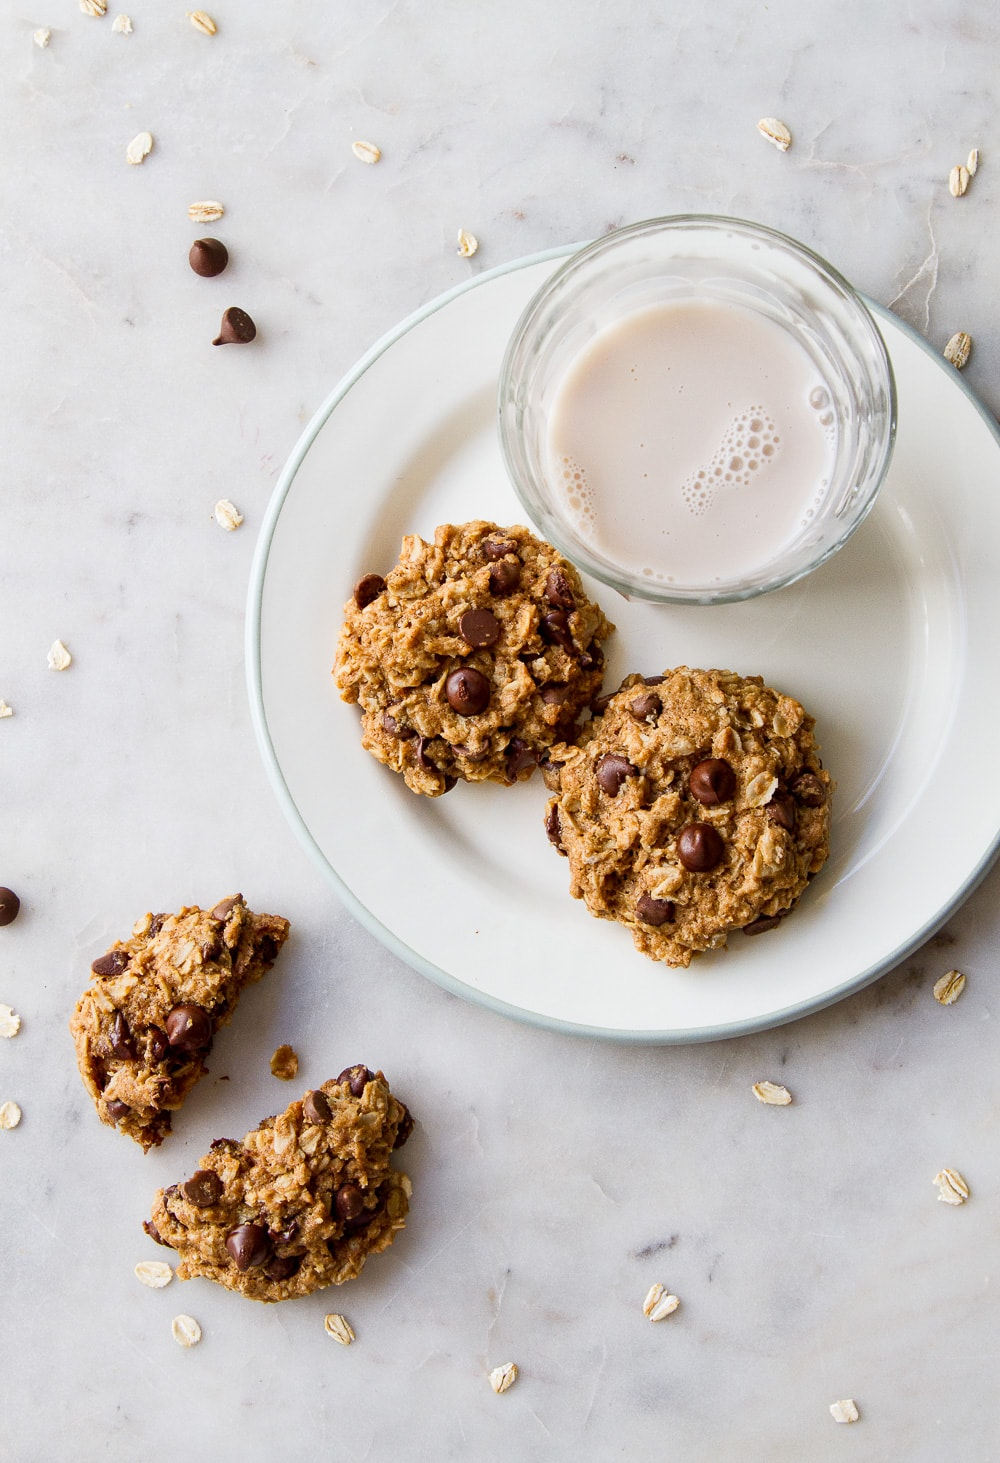 top down view of the healthy vegan oatmeal chocolate chip cookies on a plate with glass of almond milk.